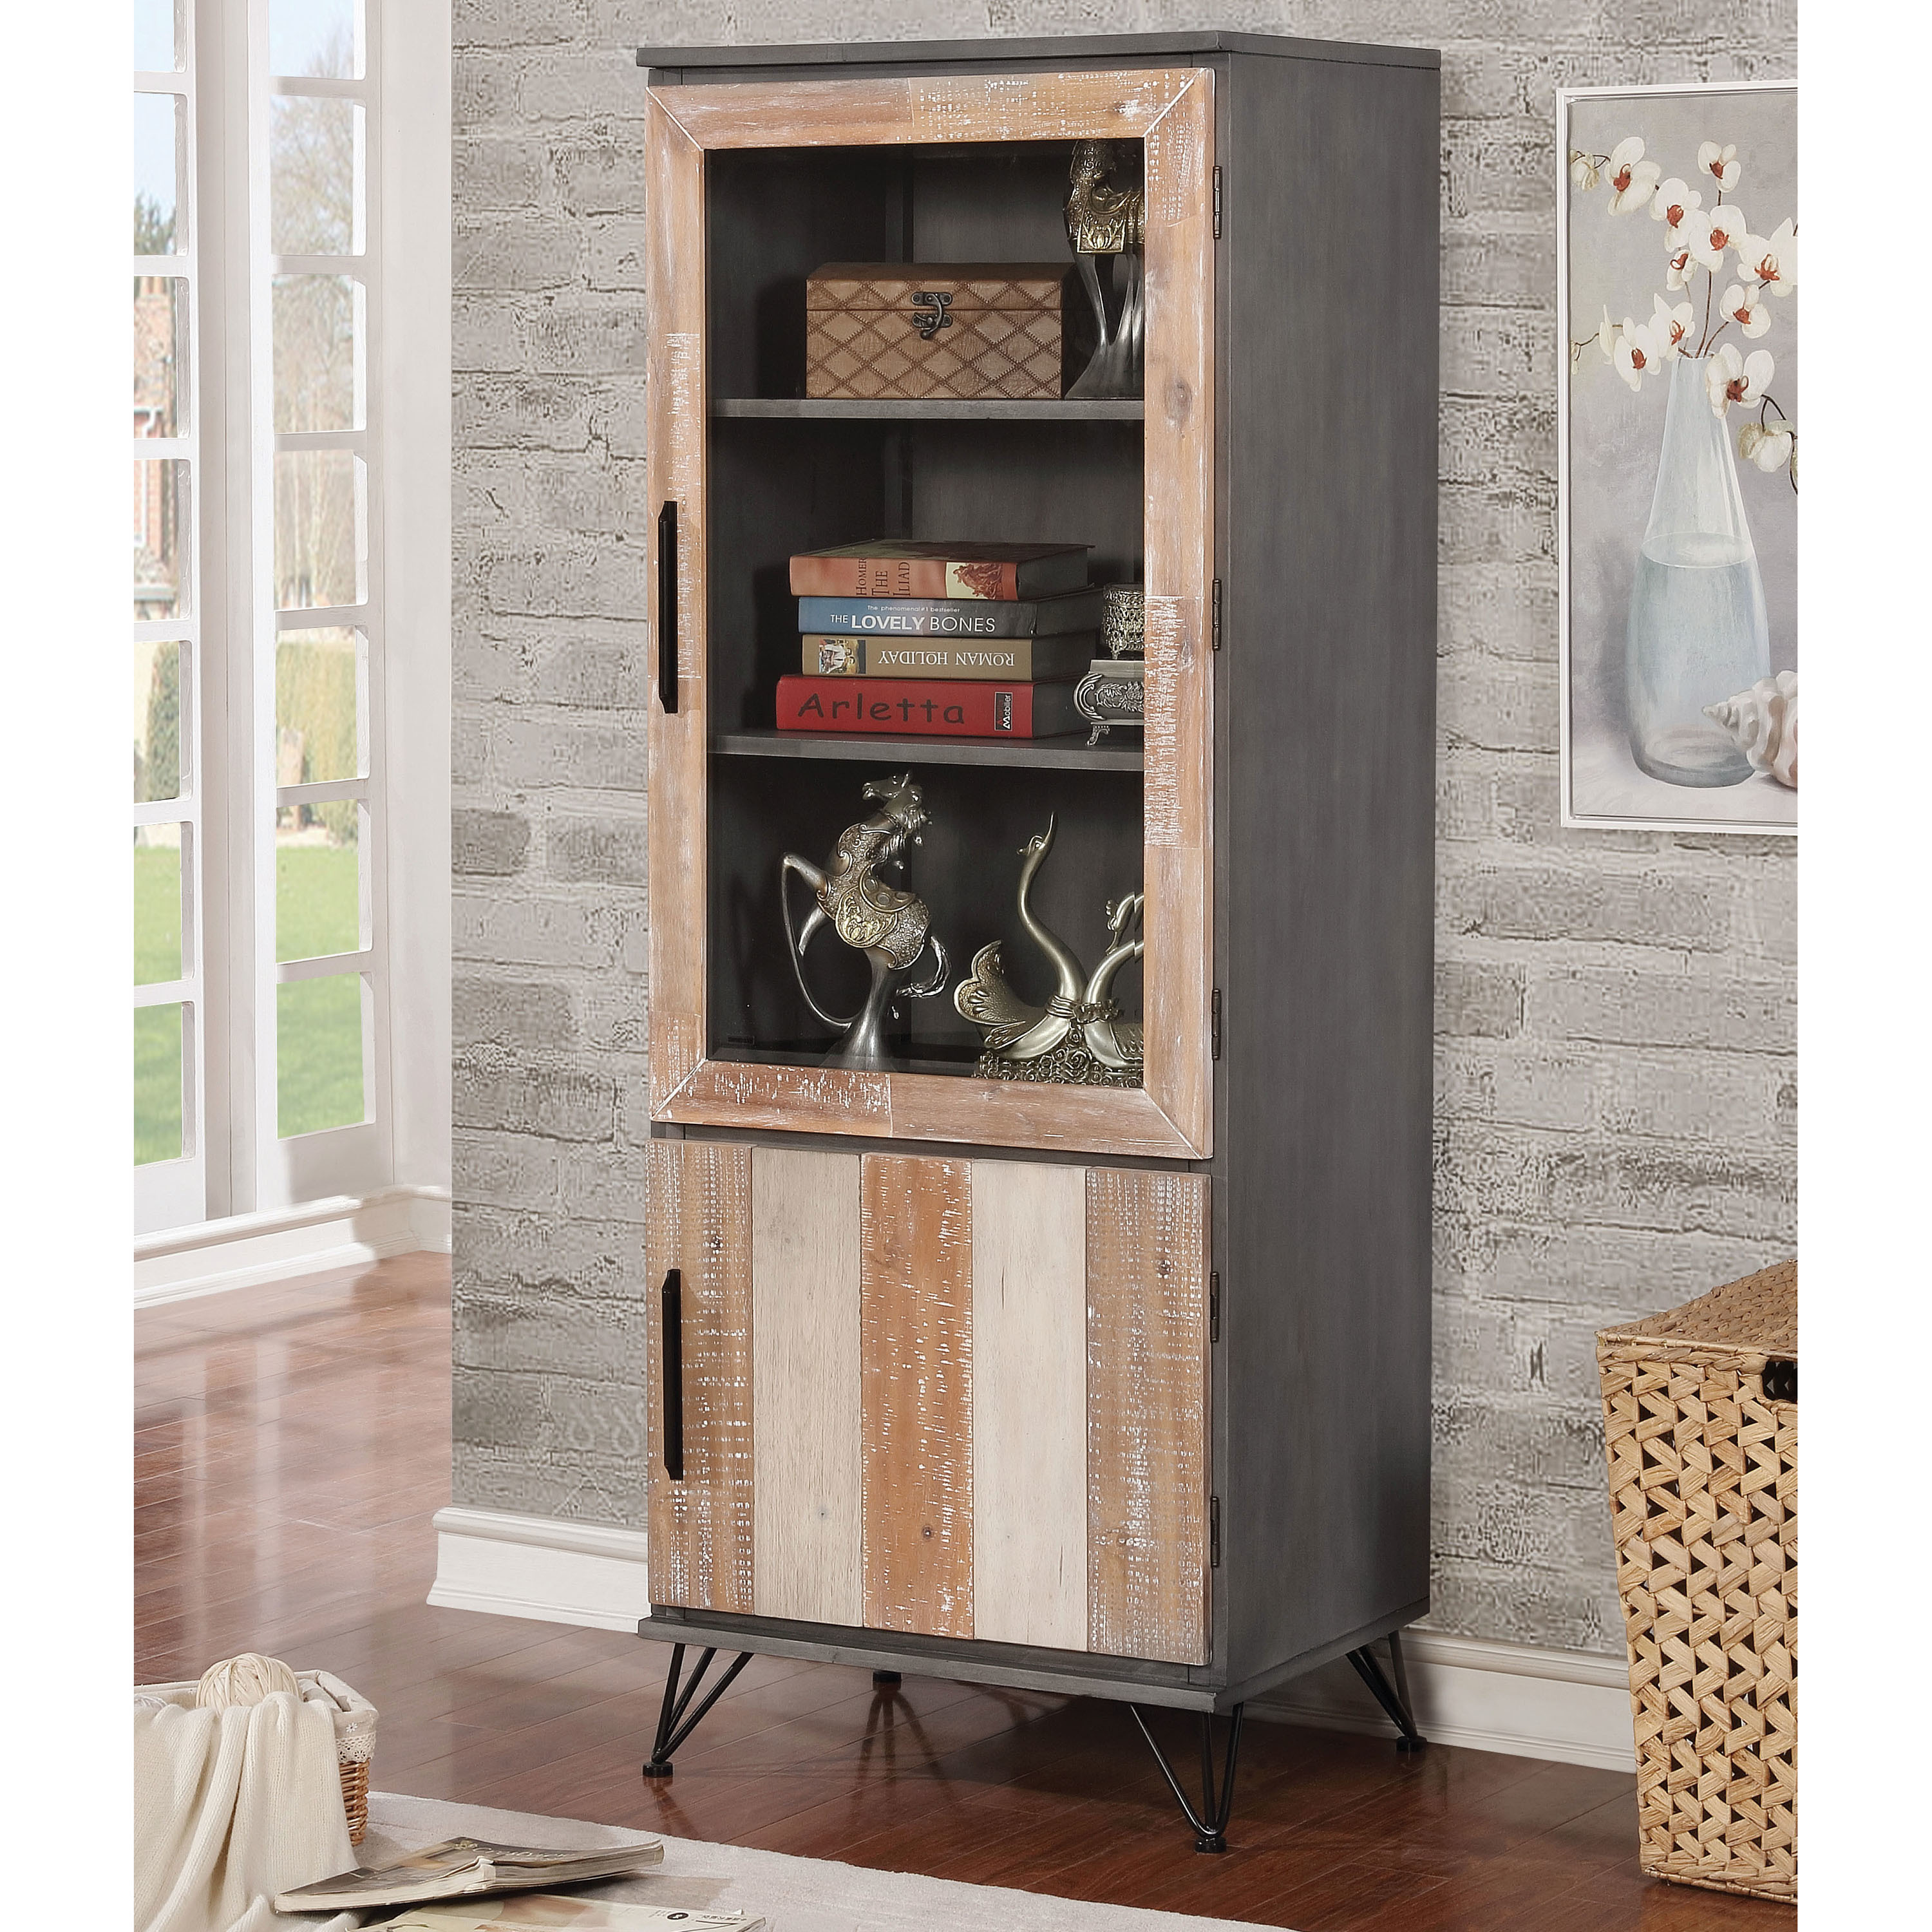 Exceptional Furniture Of America Freddie Contemporary Sawblade Style 2 Door Pier  Cabinet   Free Shipping Today   Overstock   25701529